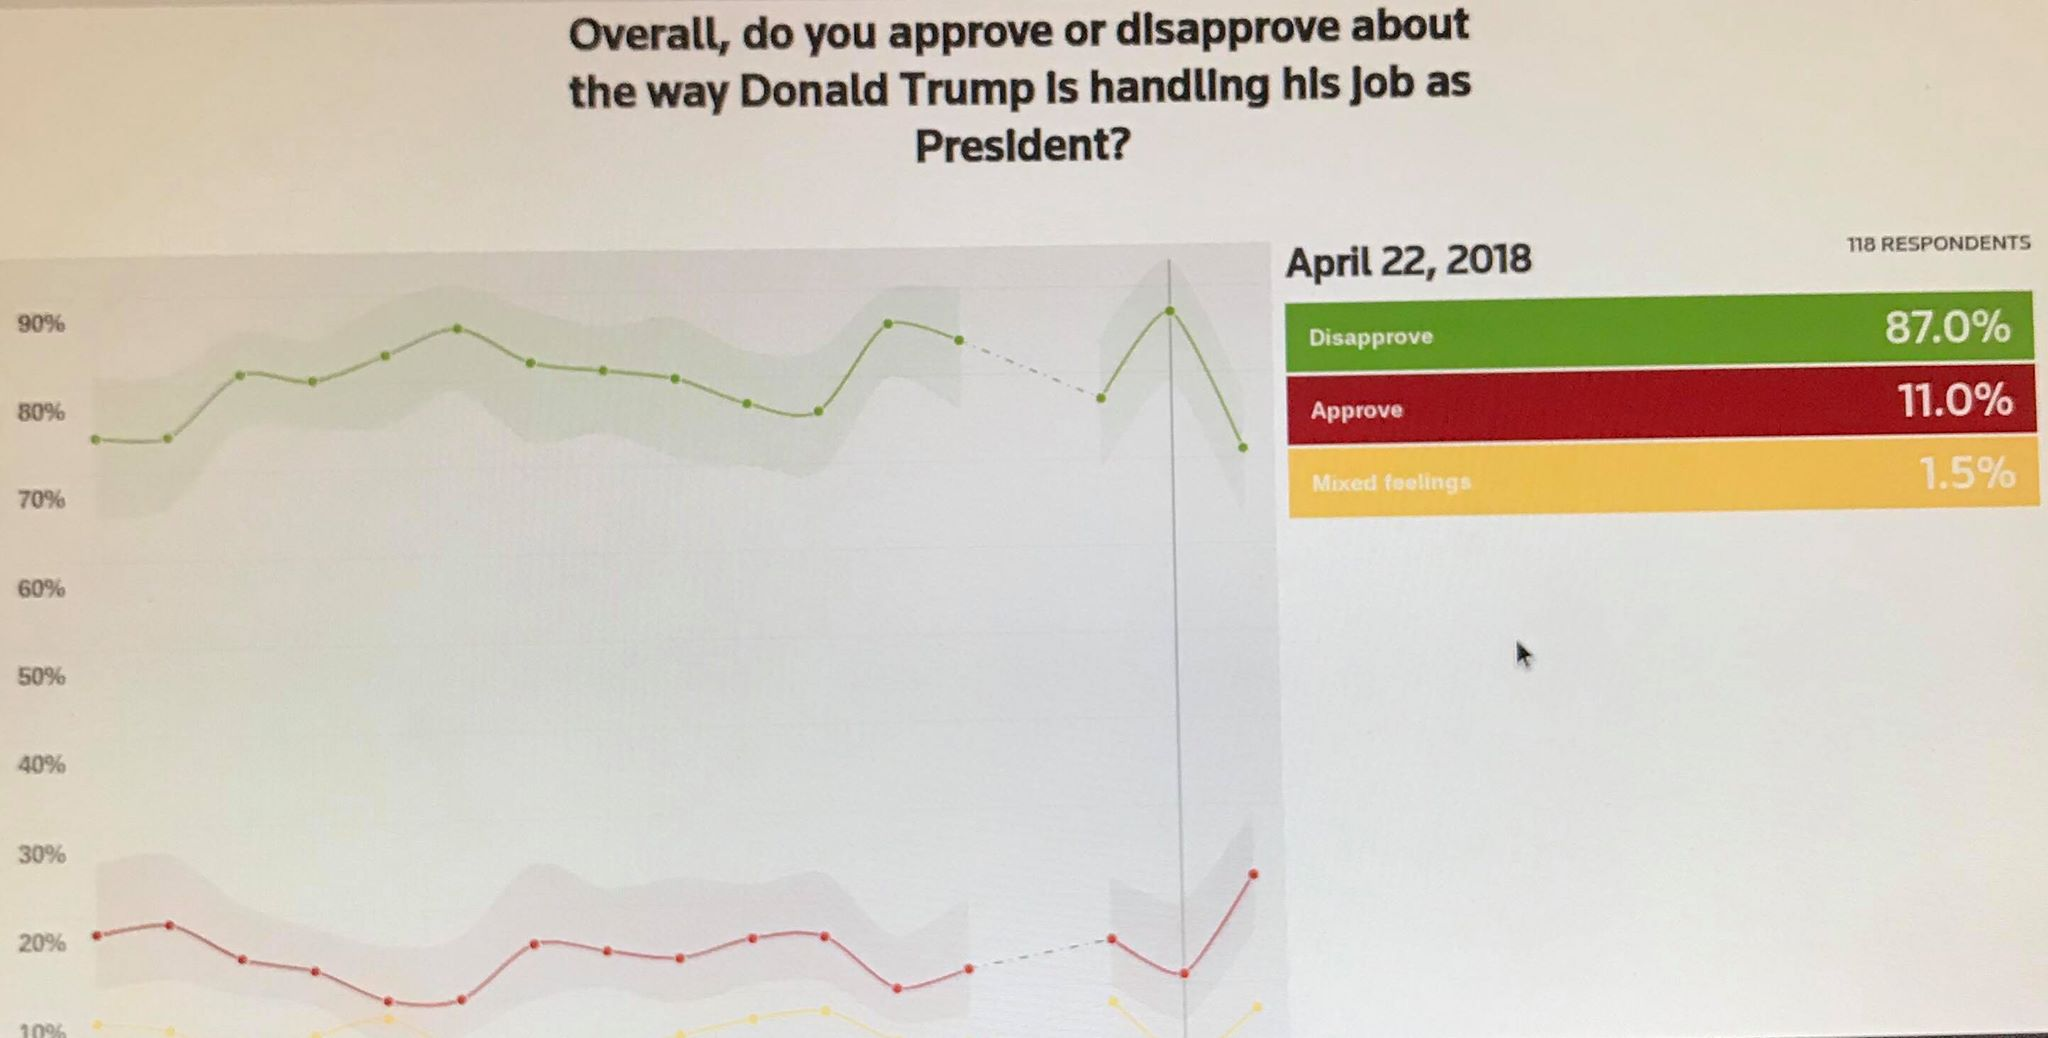 Reuters poll week ending April 22, 2018 reflects black men approval rating of the President at 11%. Photo credit to US4Trump Reuters screen capture.